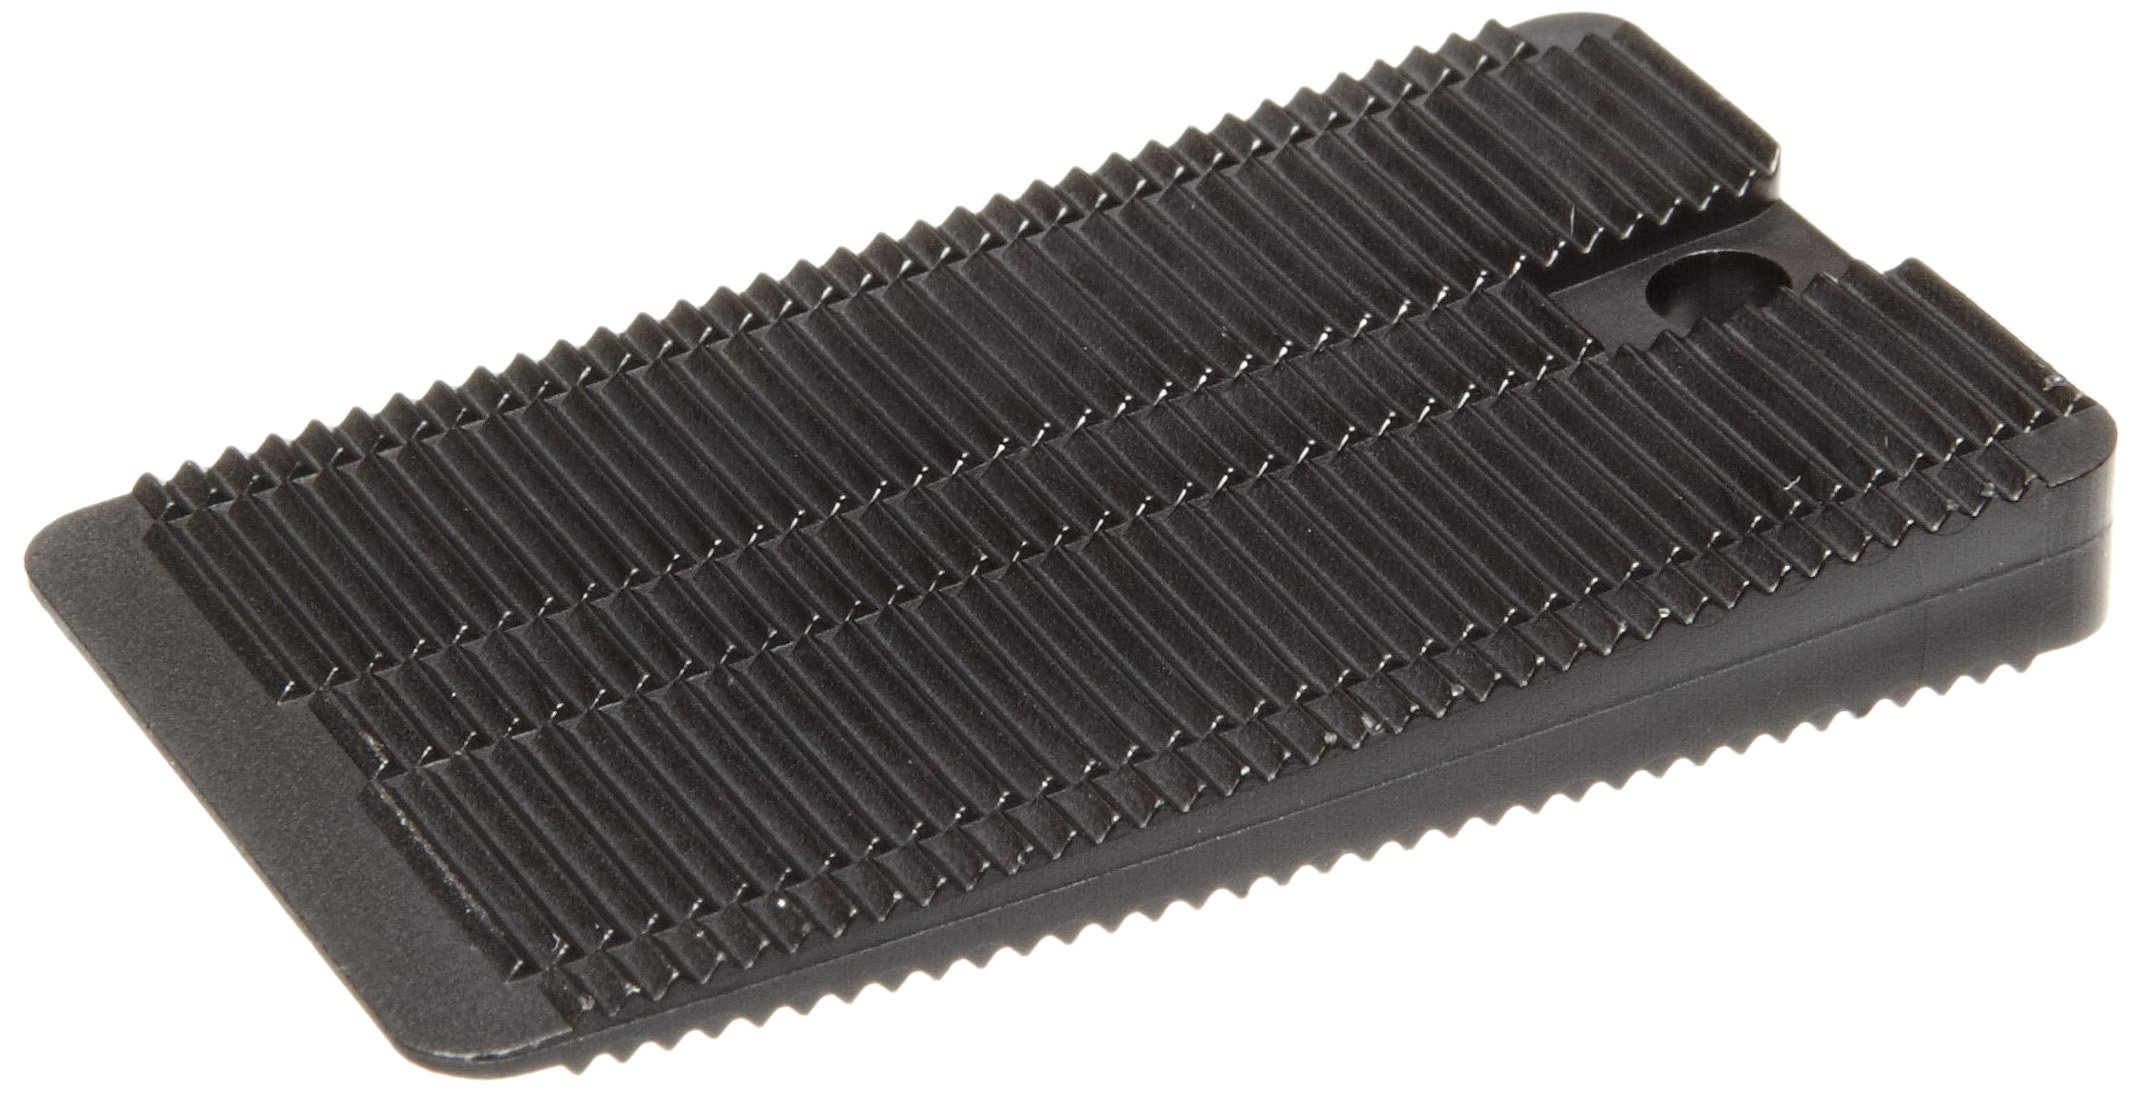 Polypropylene Wedge-Shaped Shim, Black, Inch, 1-3/16'' Width, 1-15/16'' Length (Pack Of 200) by Small Parts